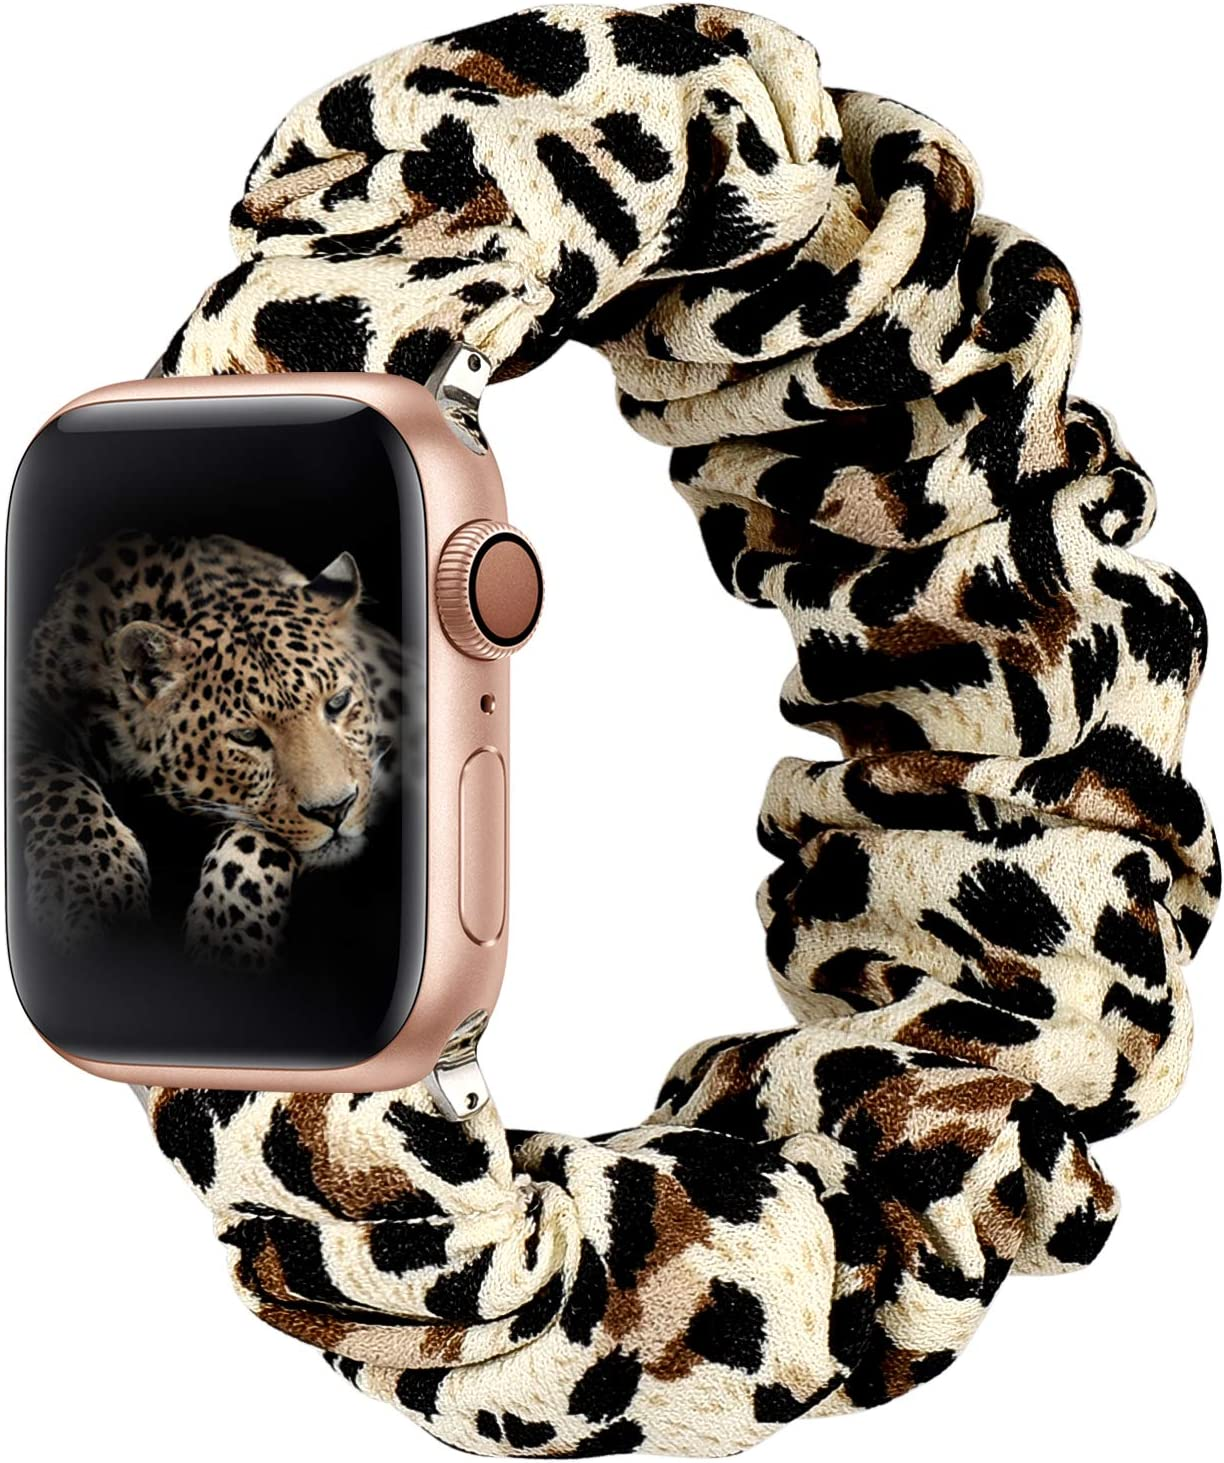 ALNBO Compatible with Apple Watch Band 38mm 40mm Soft Floral Fabric Elastic Scrunchies iWatch Bands for Apple Watch Series 6,5,4,3,2,1 38mm/40mm Leopard S